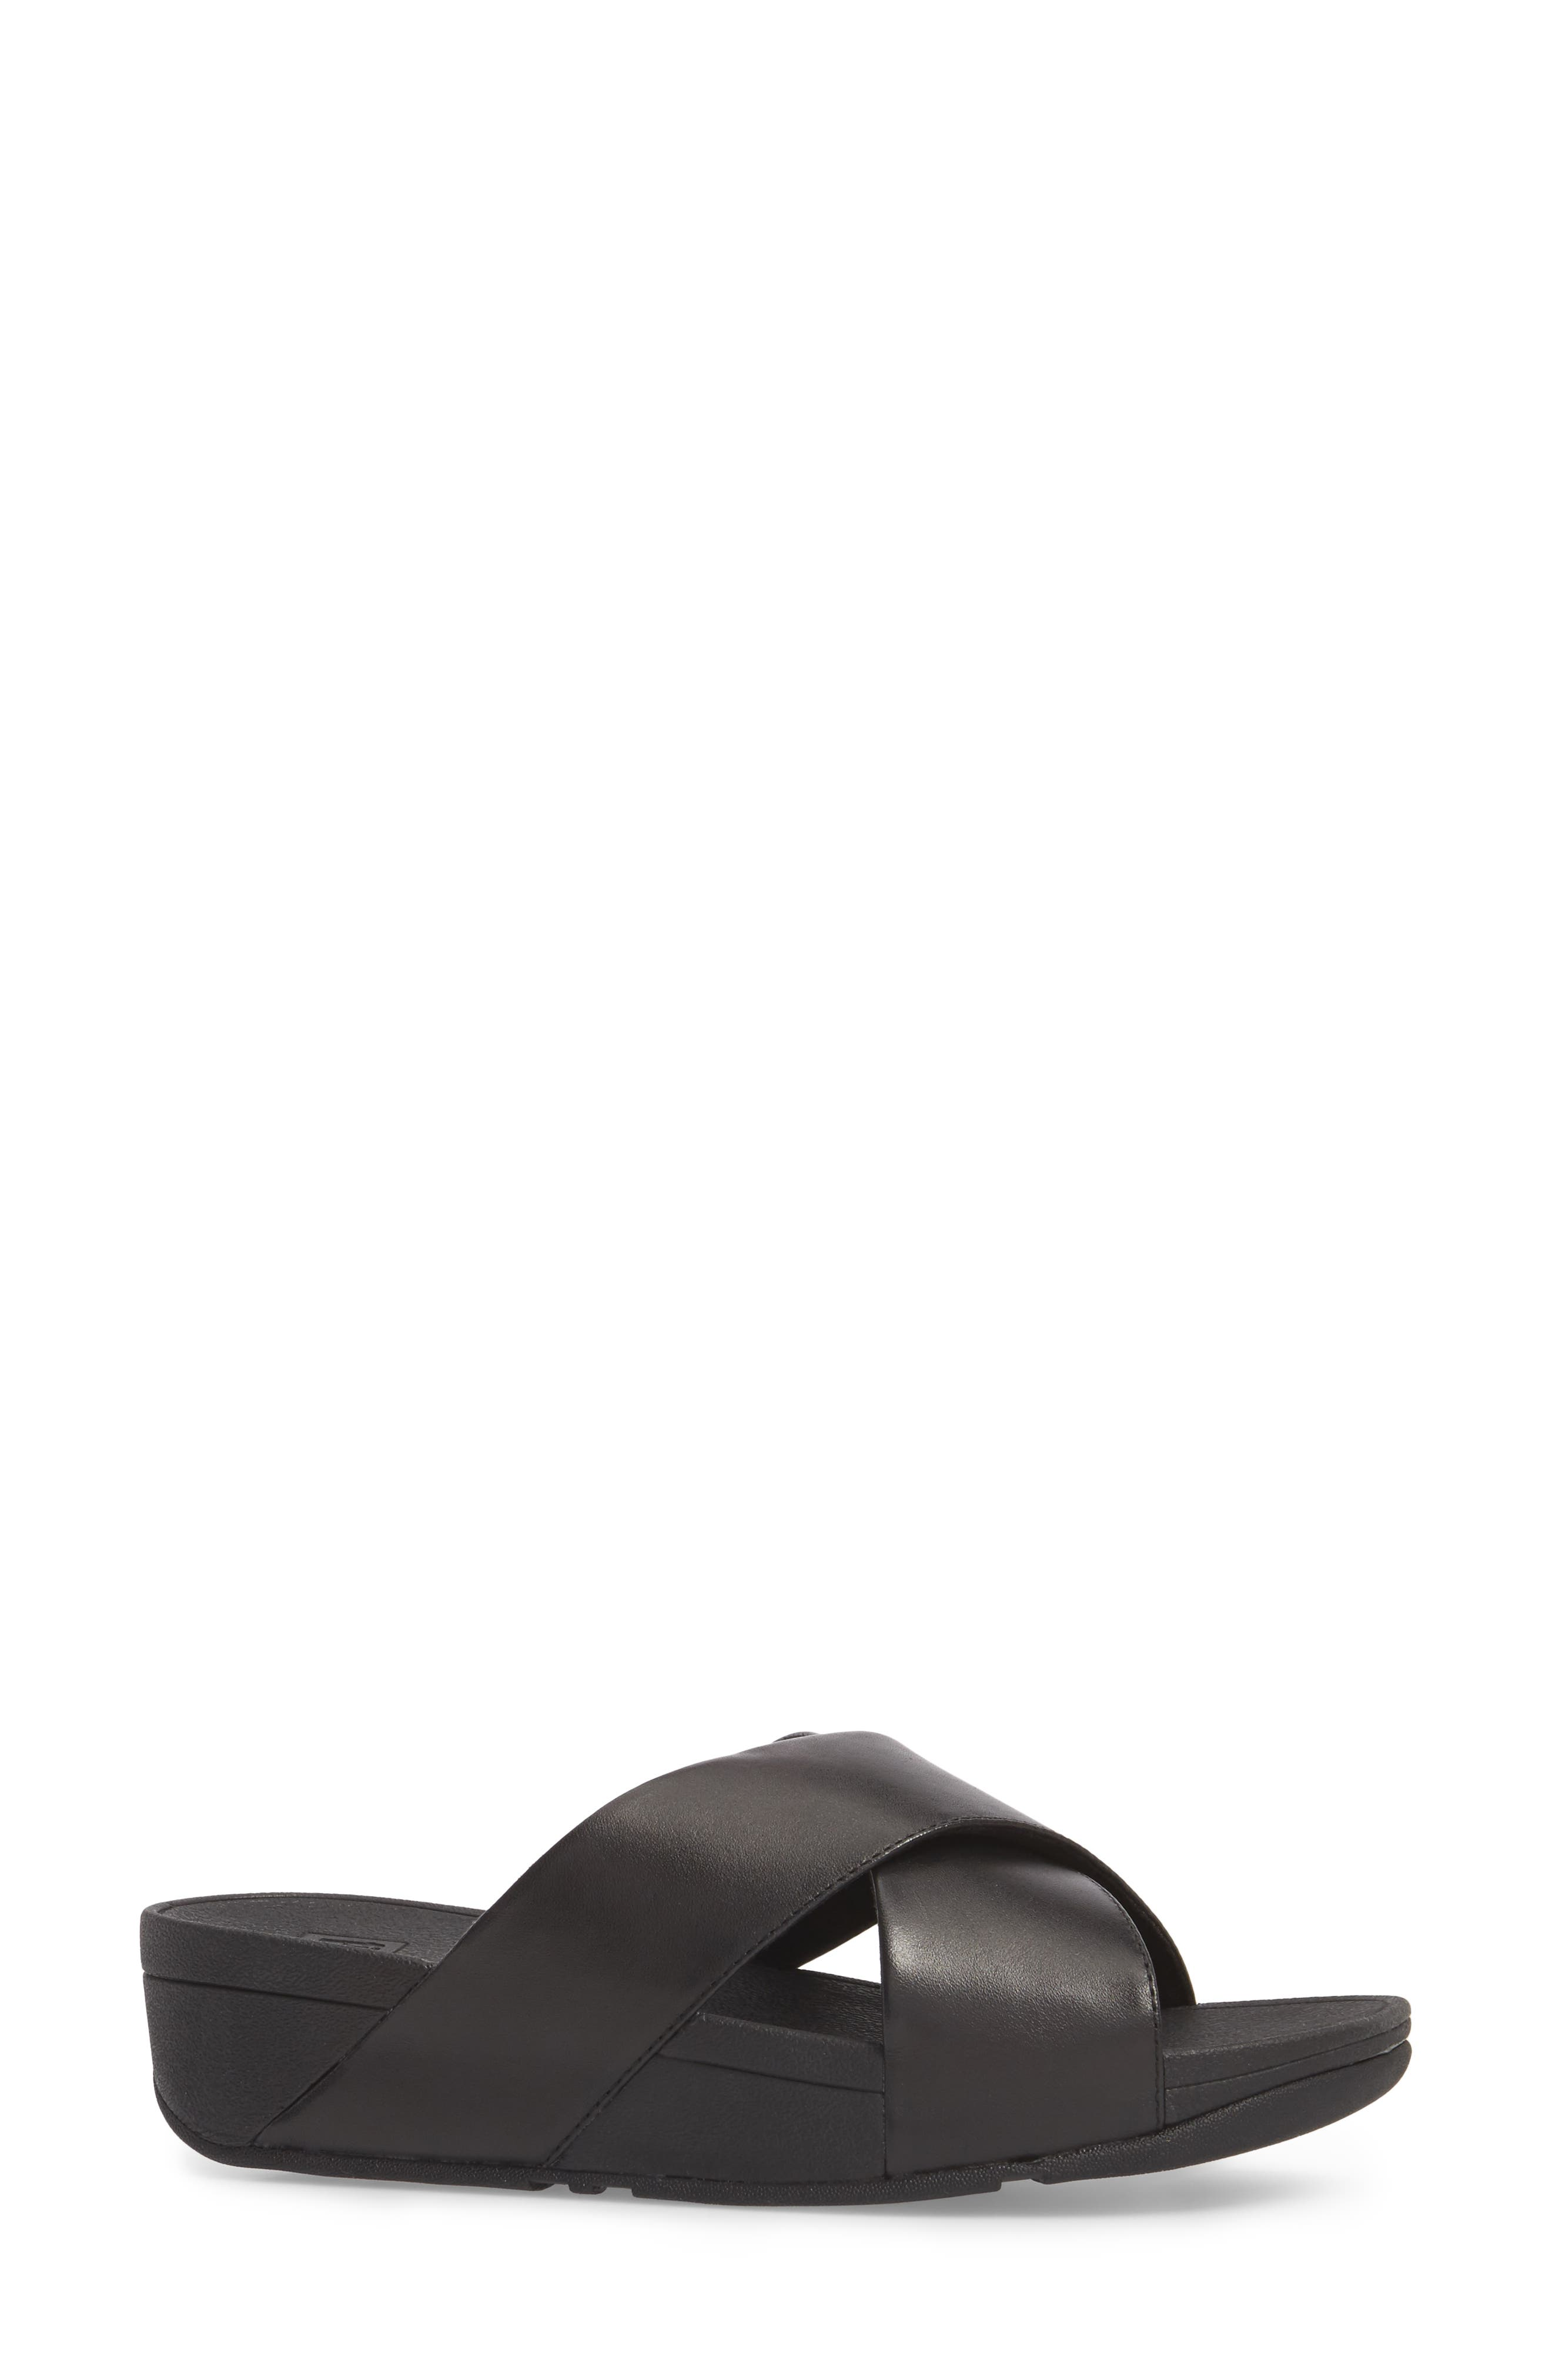 Lulu Cross Slide Sandal,                             Alternate thumbnail 3, color,                             001